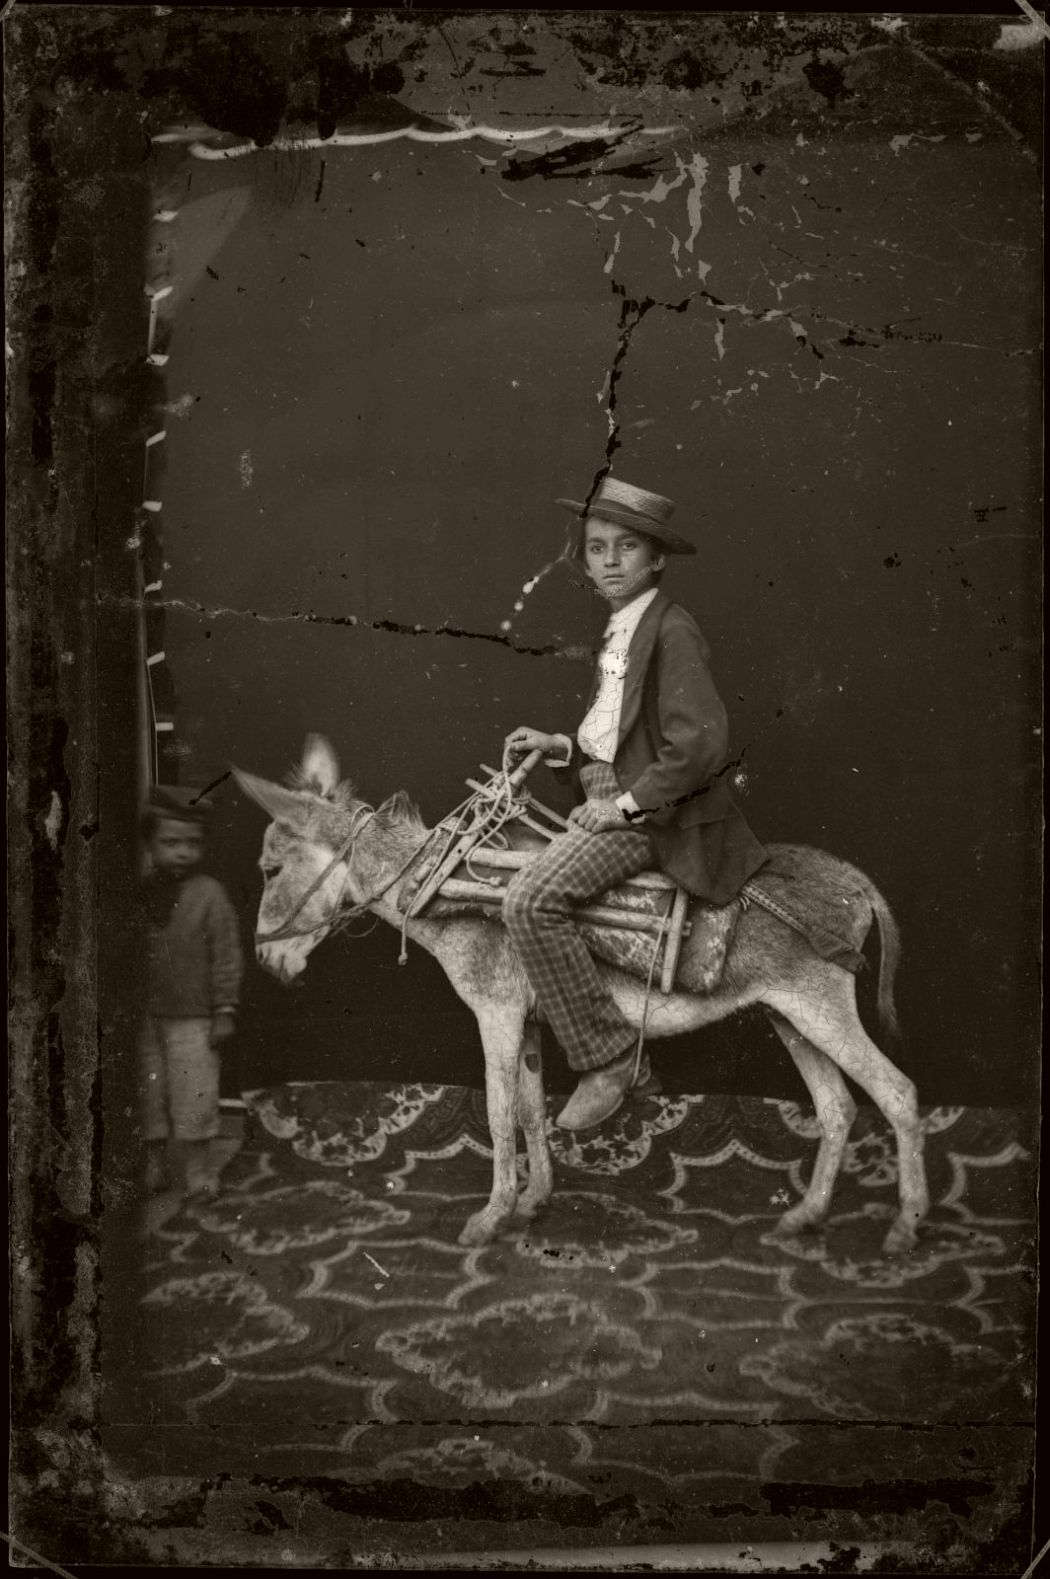 Untitled, before 1881, Pietro Marubi, wet plate © Marubi National Museum of Photography